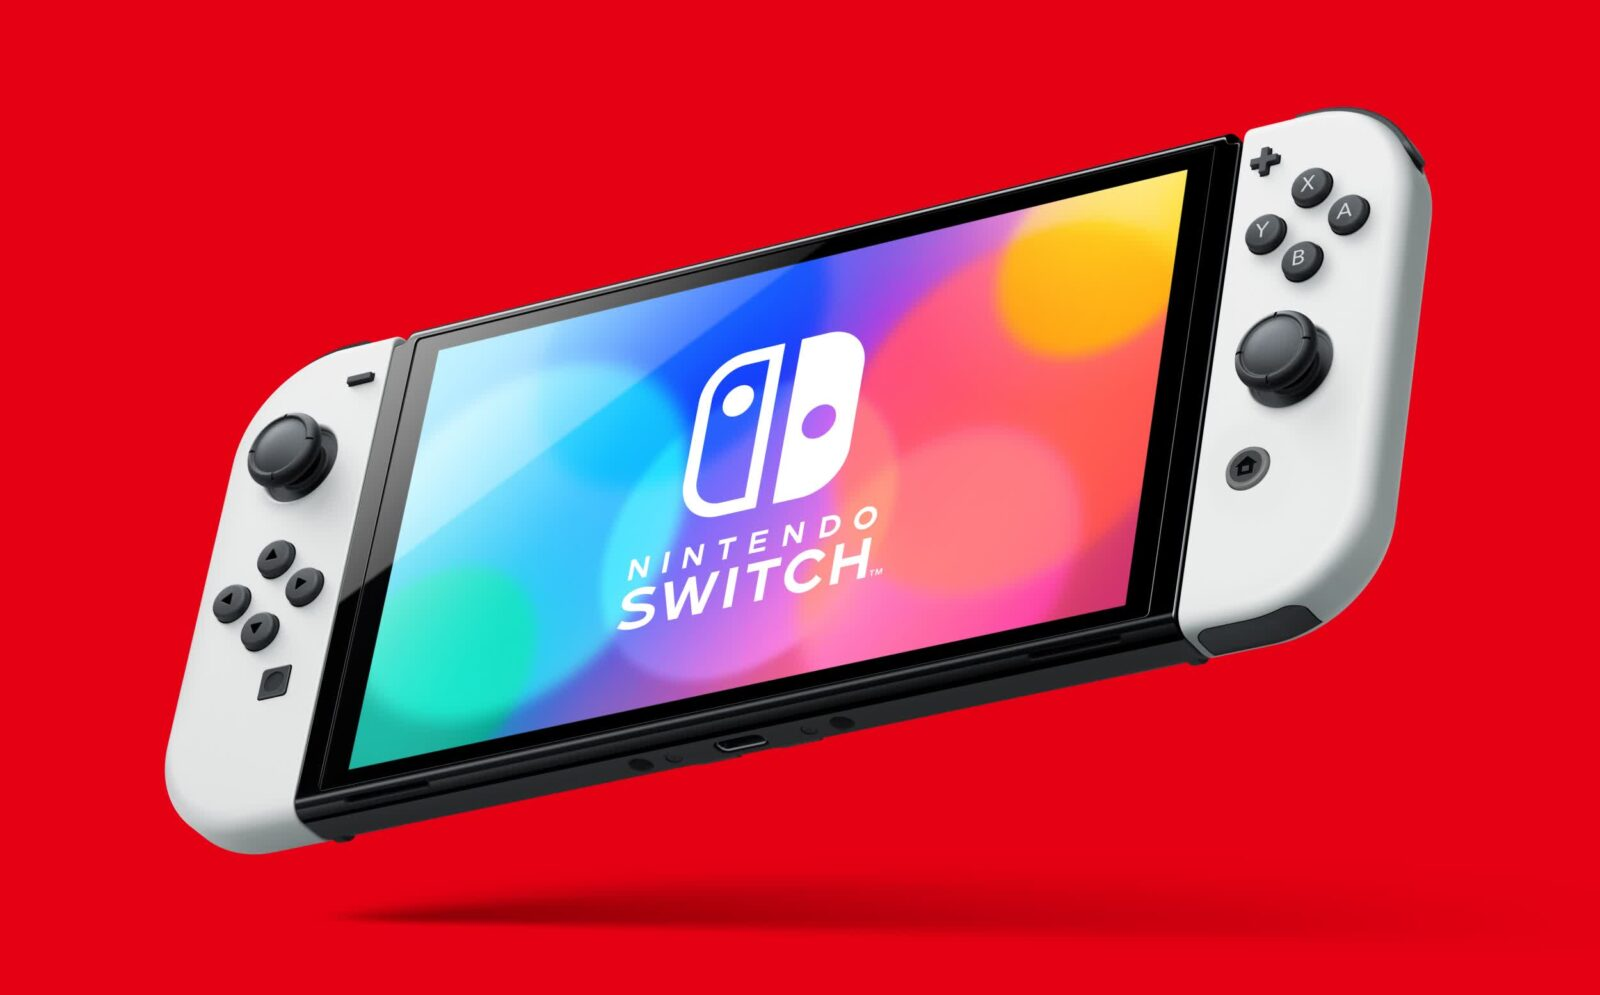 Nintendo announces updated Switch with a larger OLED display, 64GB of storage, improved audio, and more